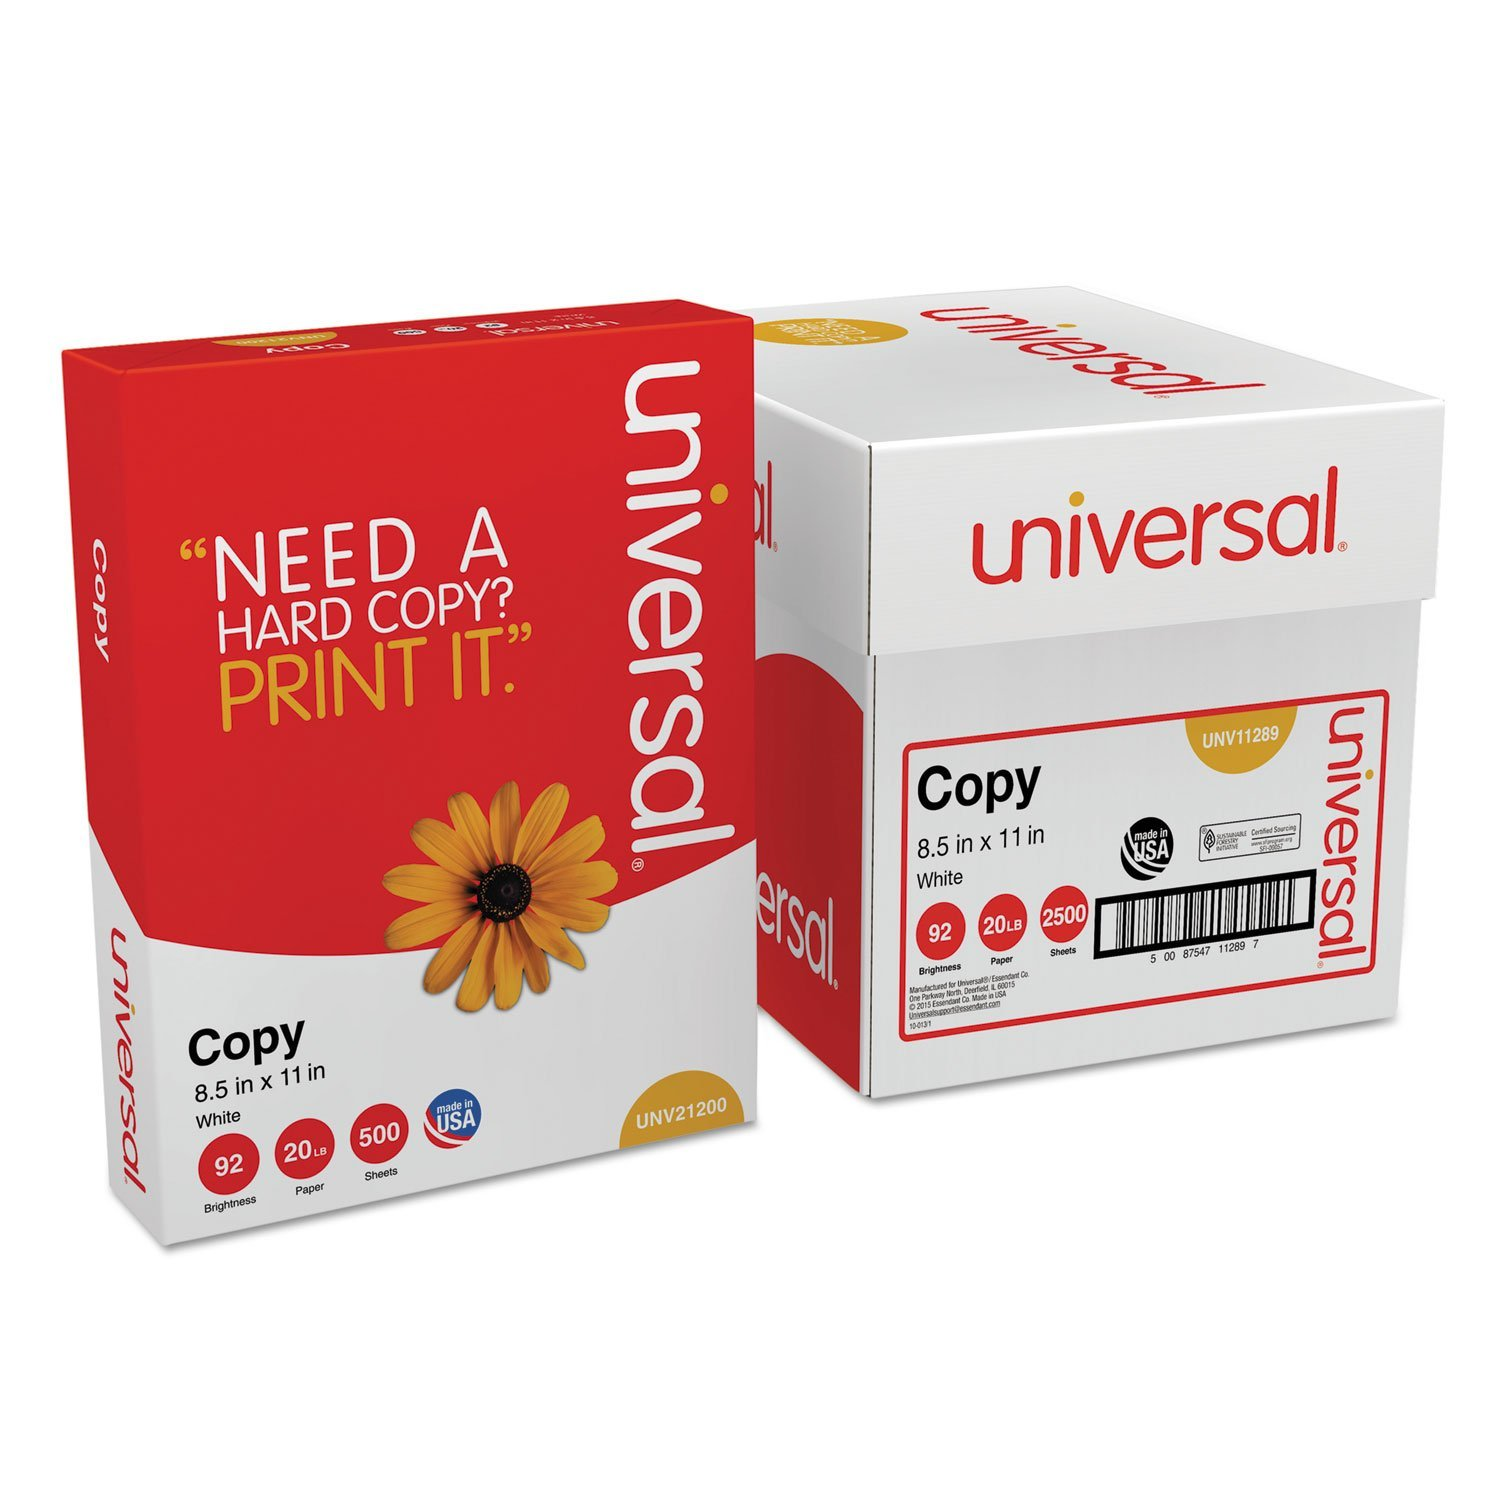 Copy Paper Convenience Carton 92 Brightness 20lb 81/2 x 11 White 2500/Ctn, Sold as 5 Reams/Carton (2500 Sheets) By Universal Office Products Ship from US